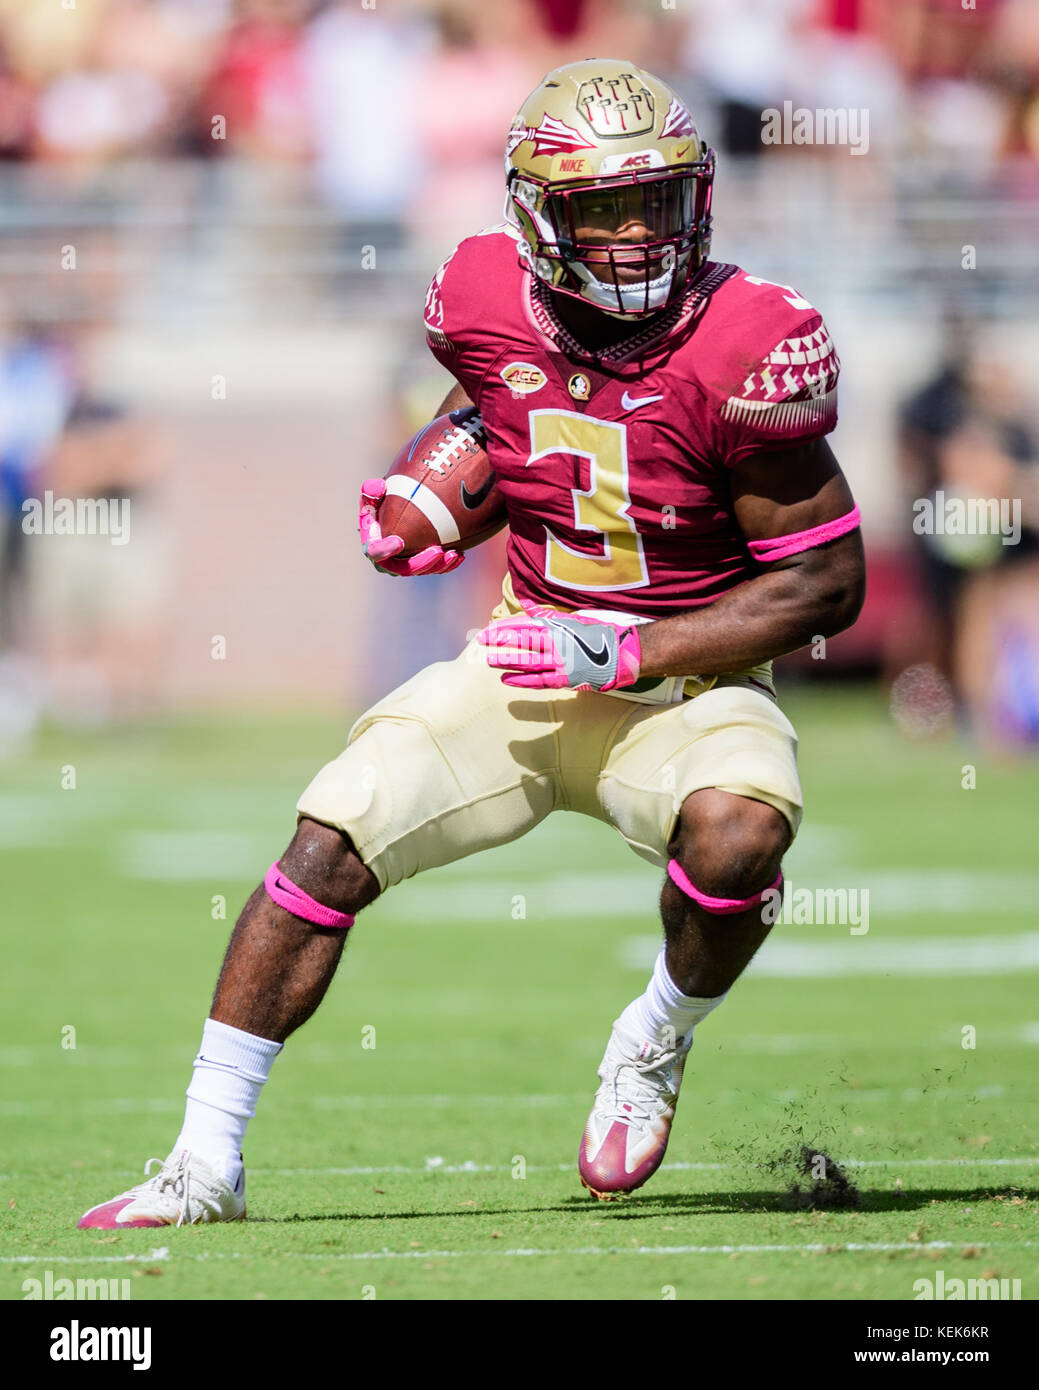 Florida State Running Back Cam Akers 3 During The Ncaa College Stock Photo Alamy